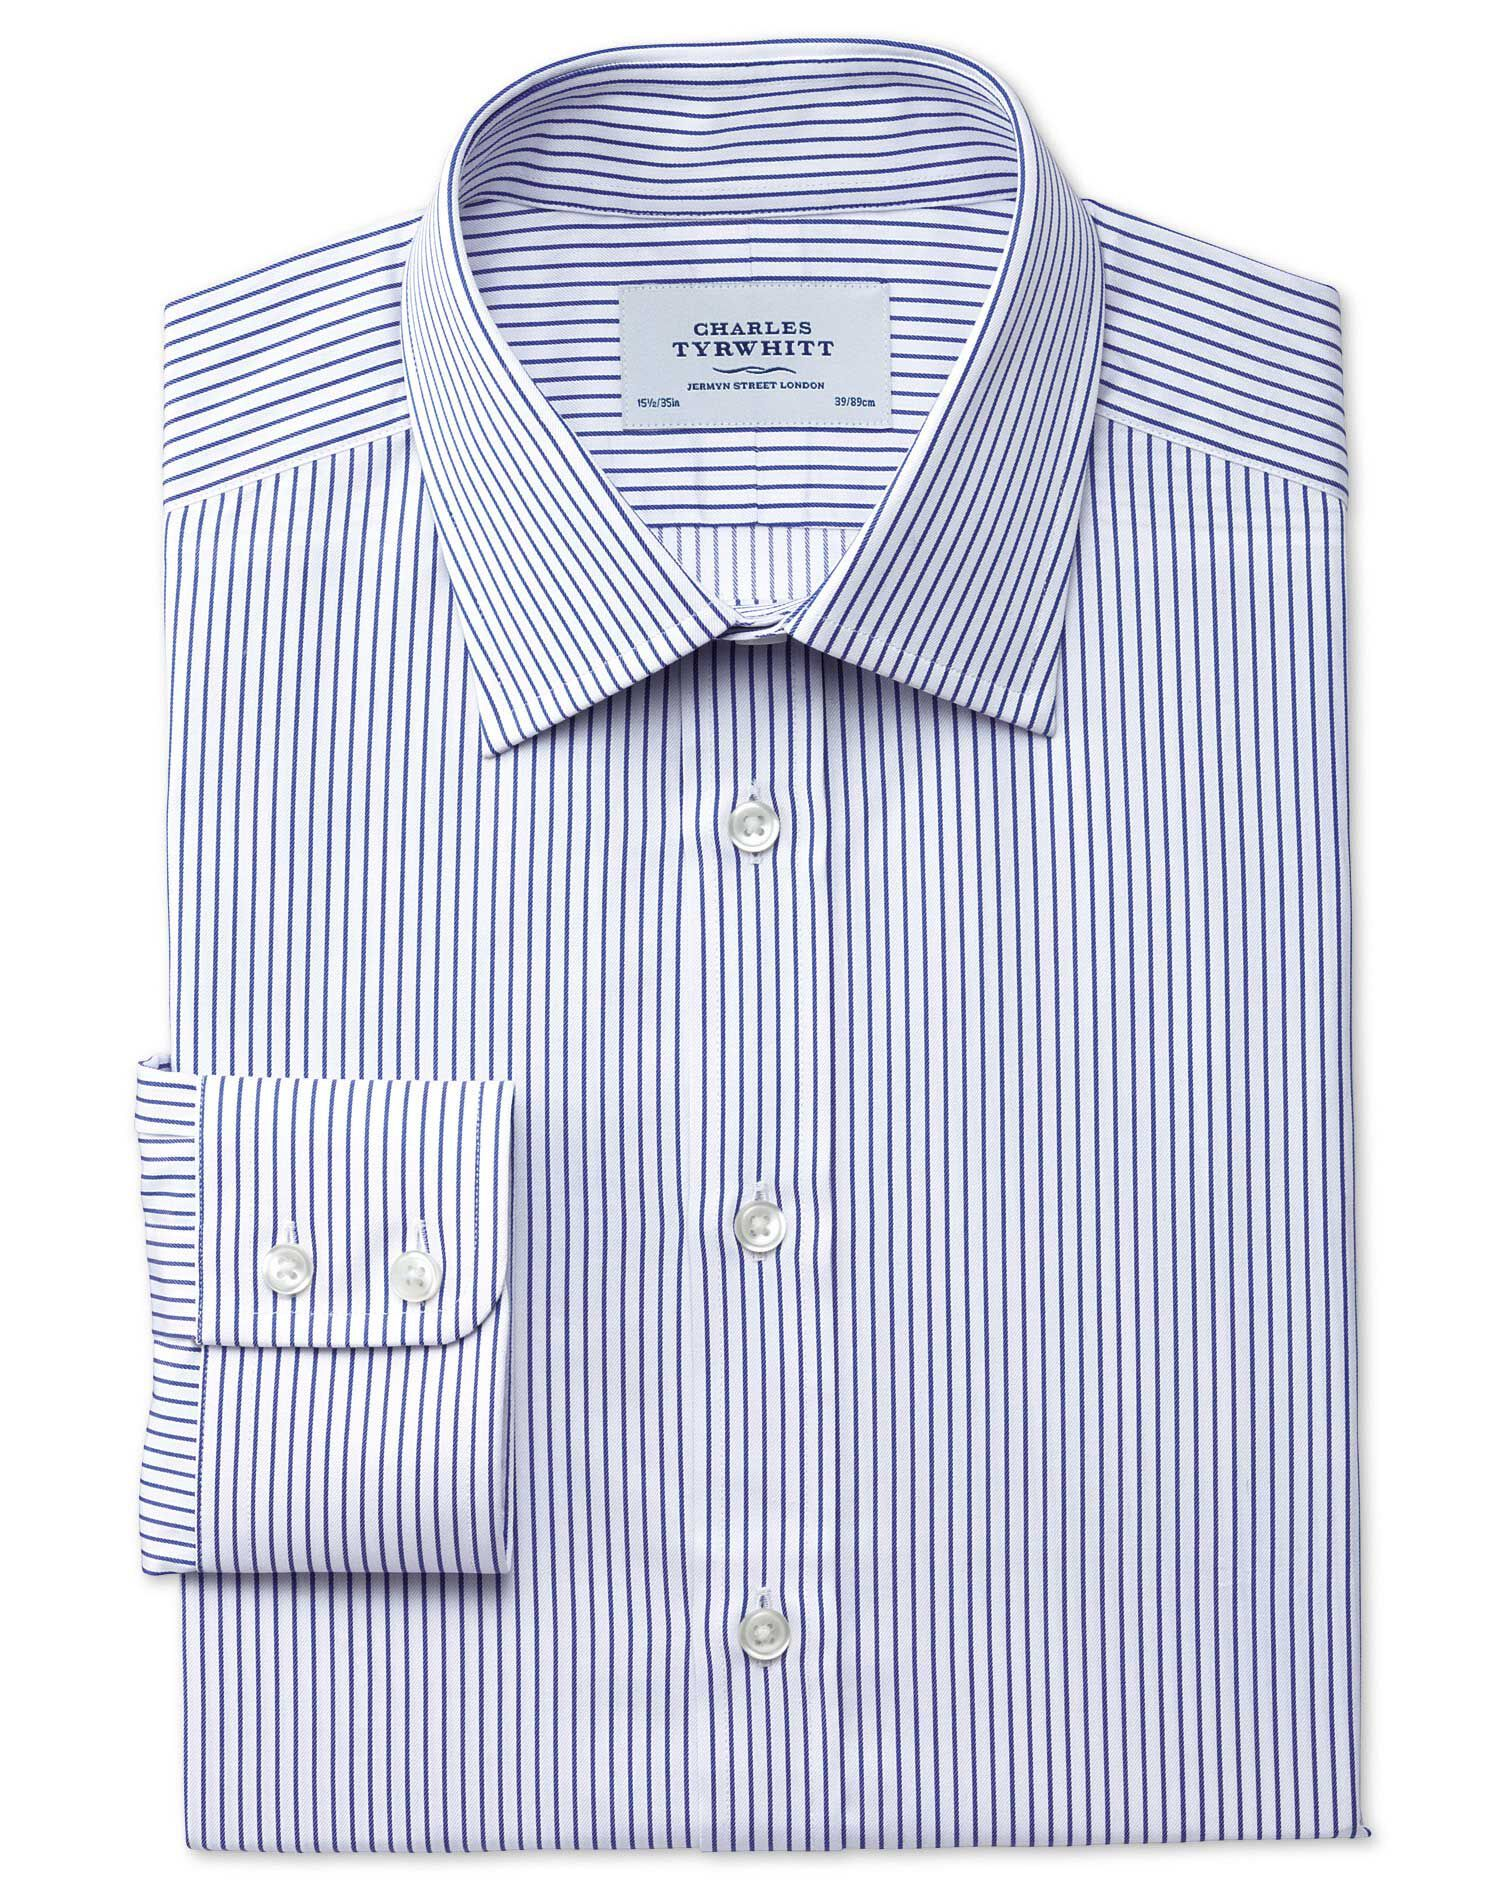 Slim Fit Egyptian Cotton Stripe White and Navy Formal Shirt Single Cuff Size 17.5/34 by Charles Tyrw